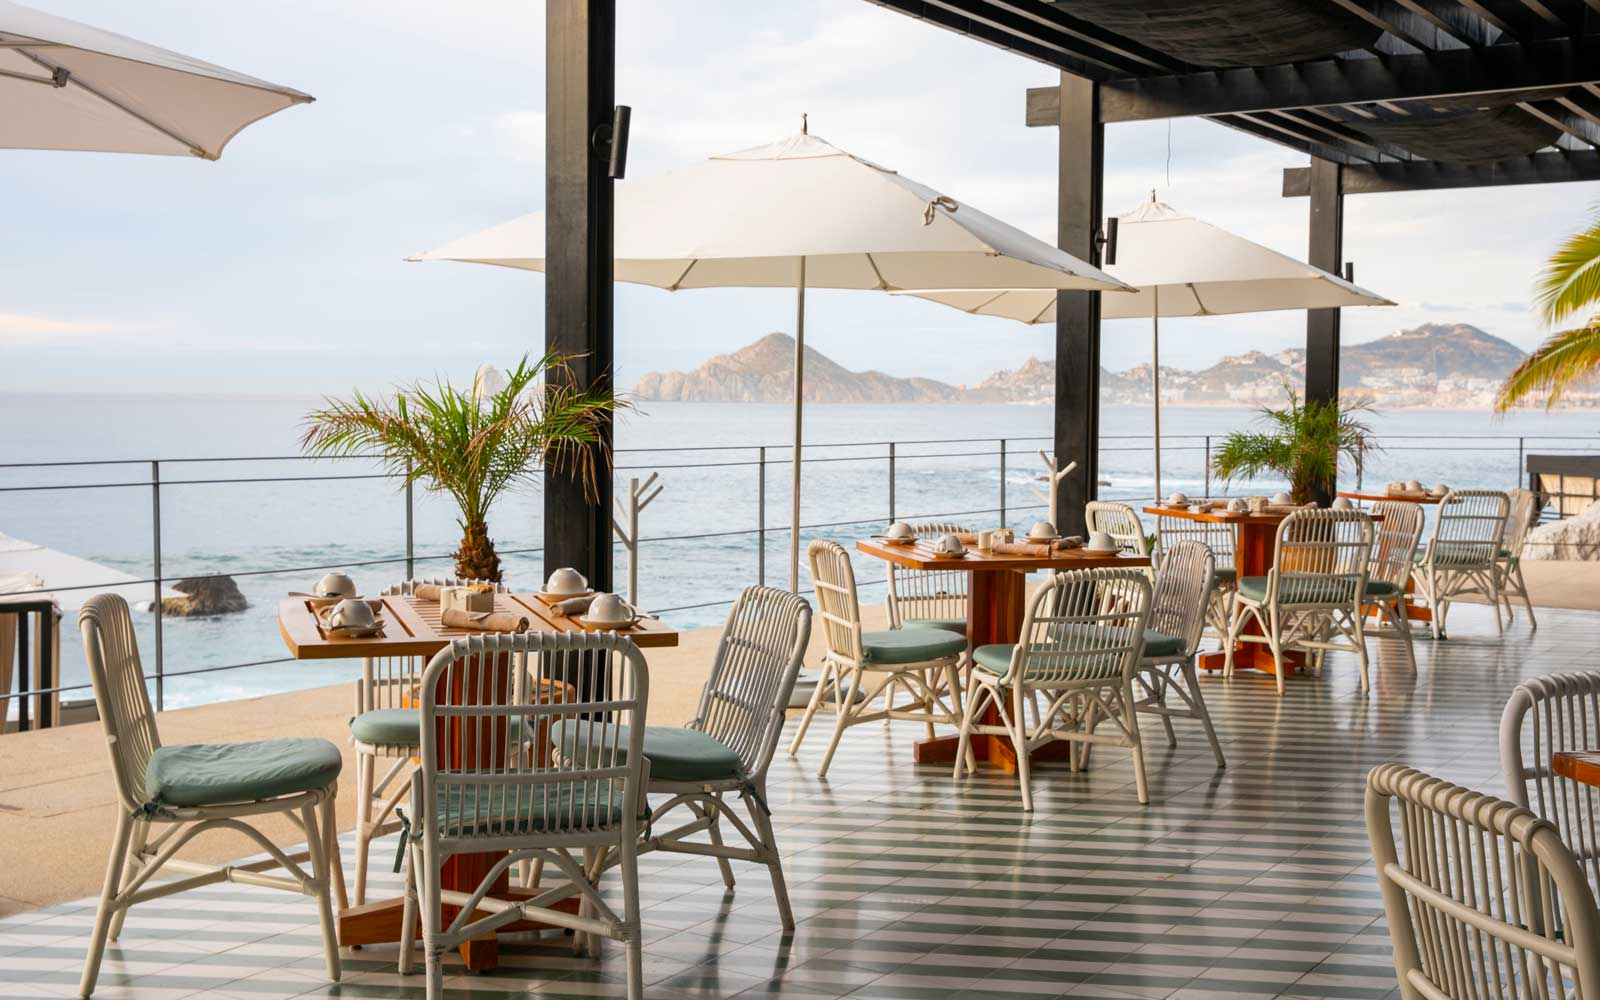 Outdoor dining at The Ledge, at The Cape hotel in Los Cabos